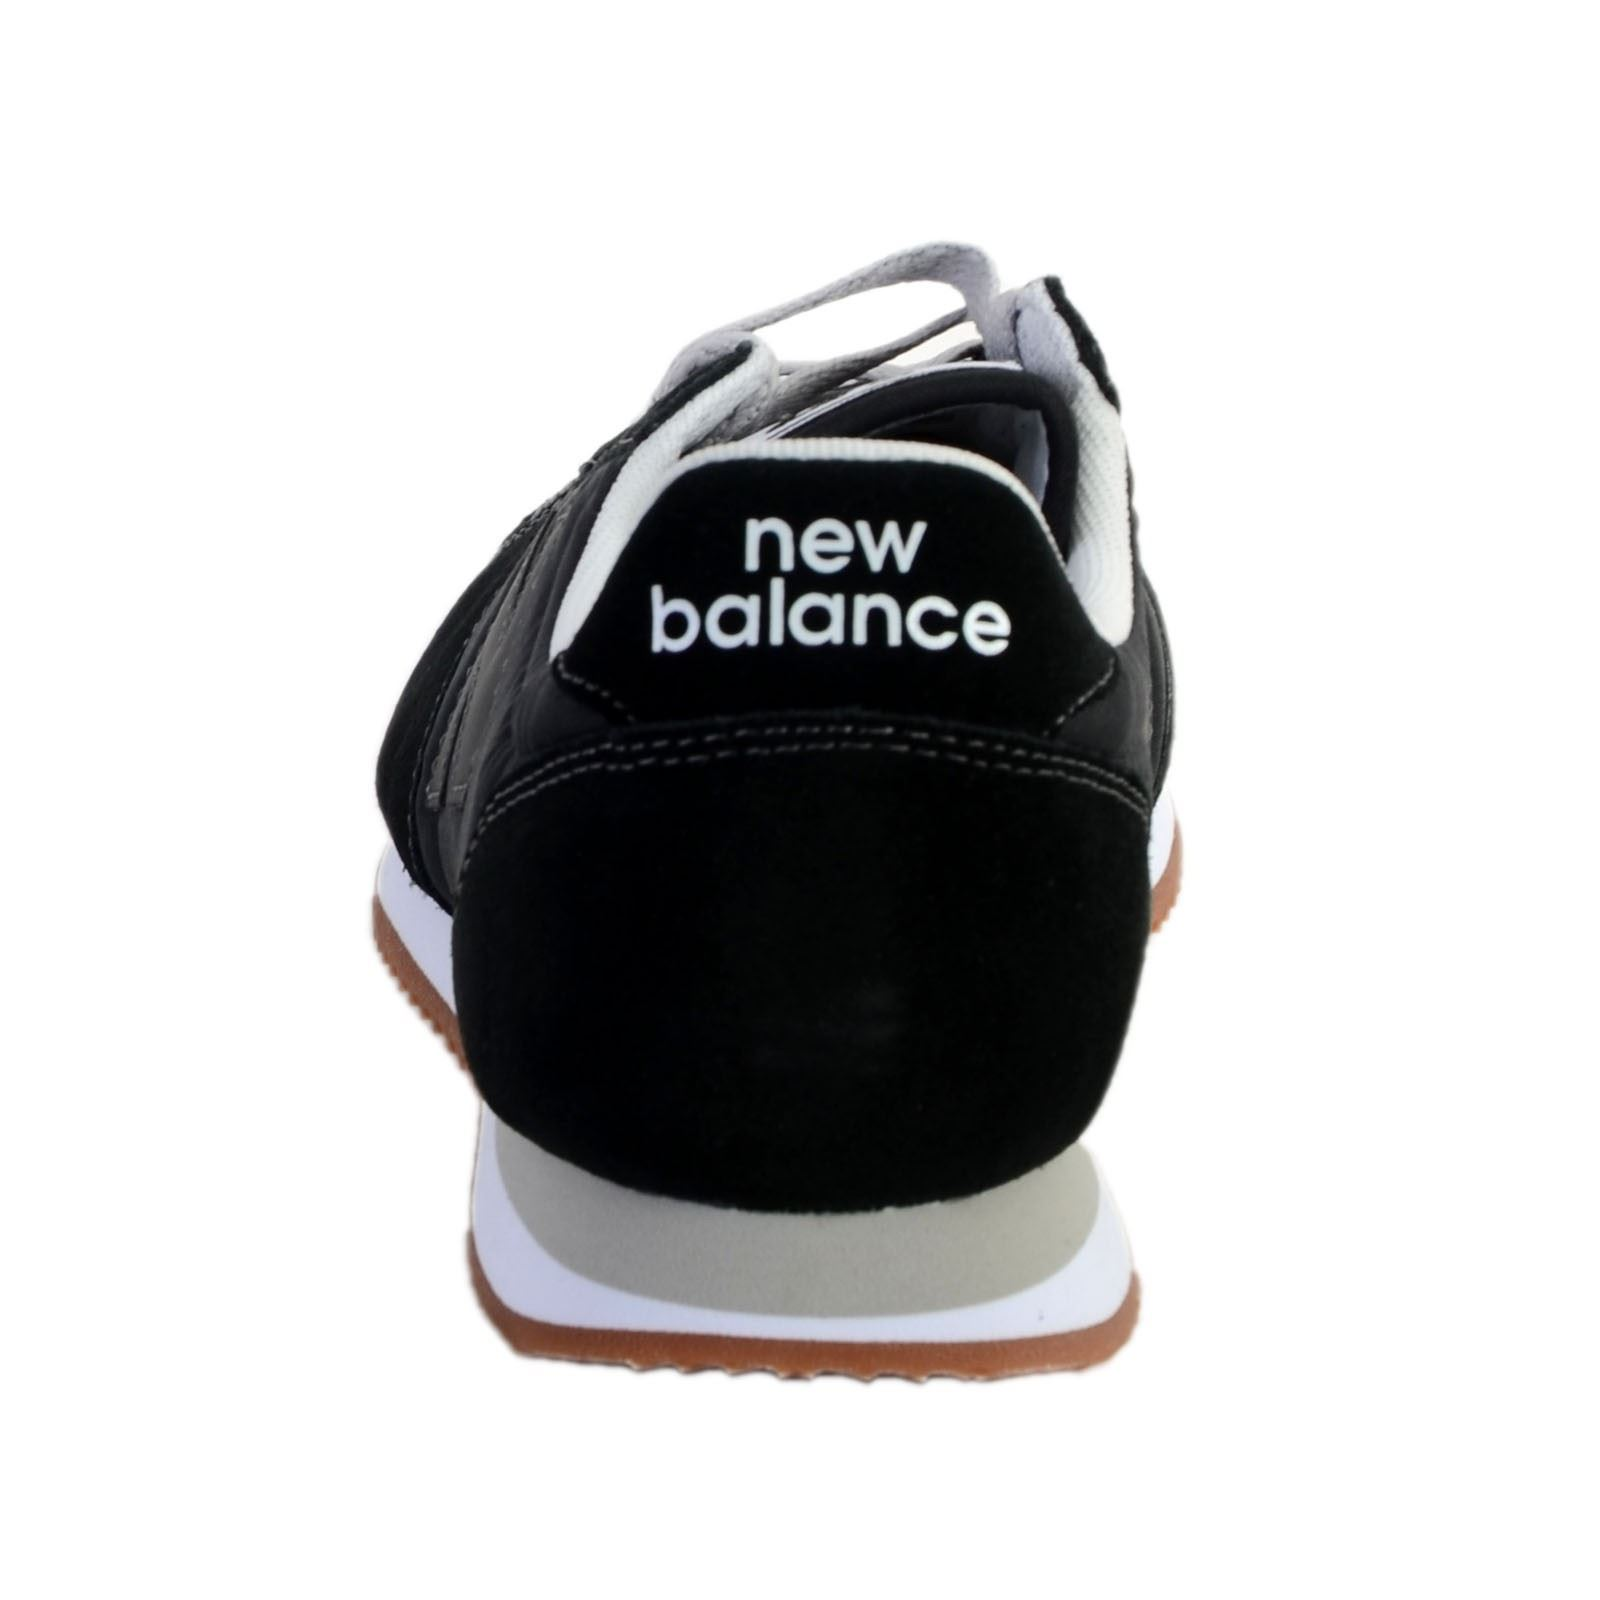 new balance baskets basses